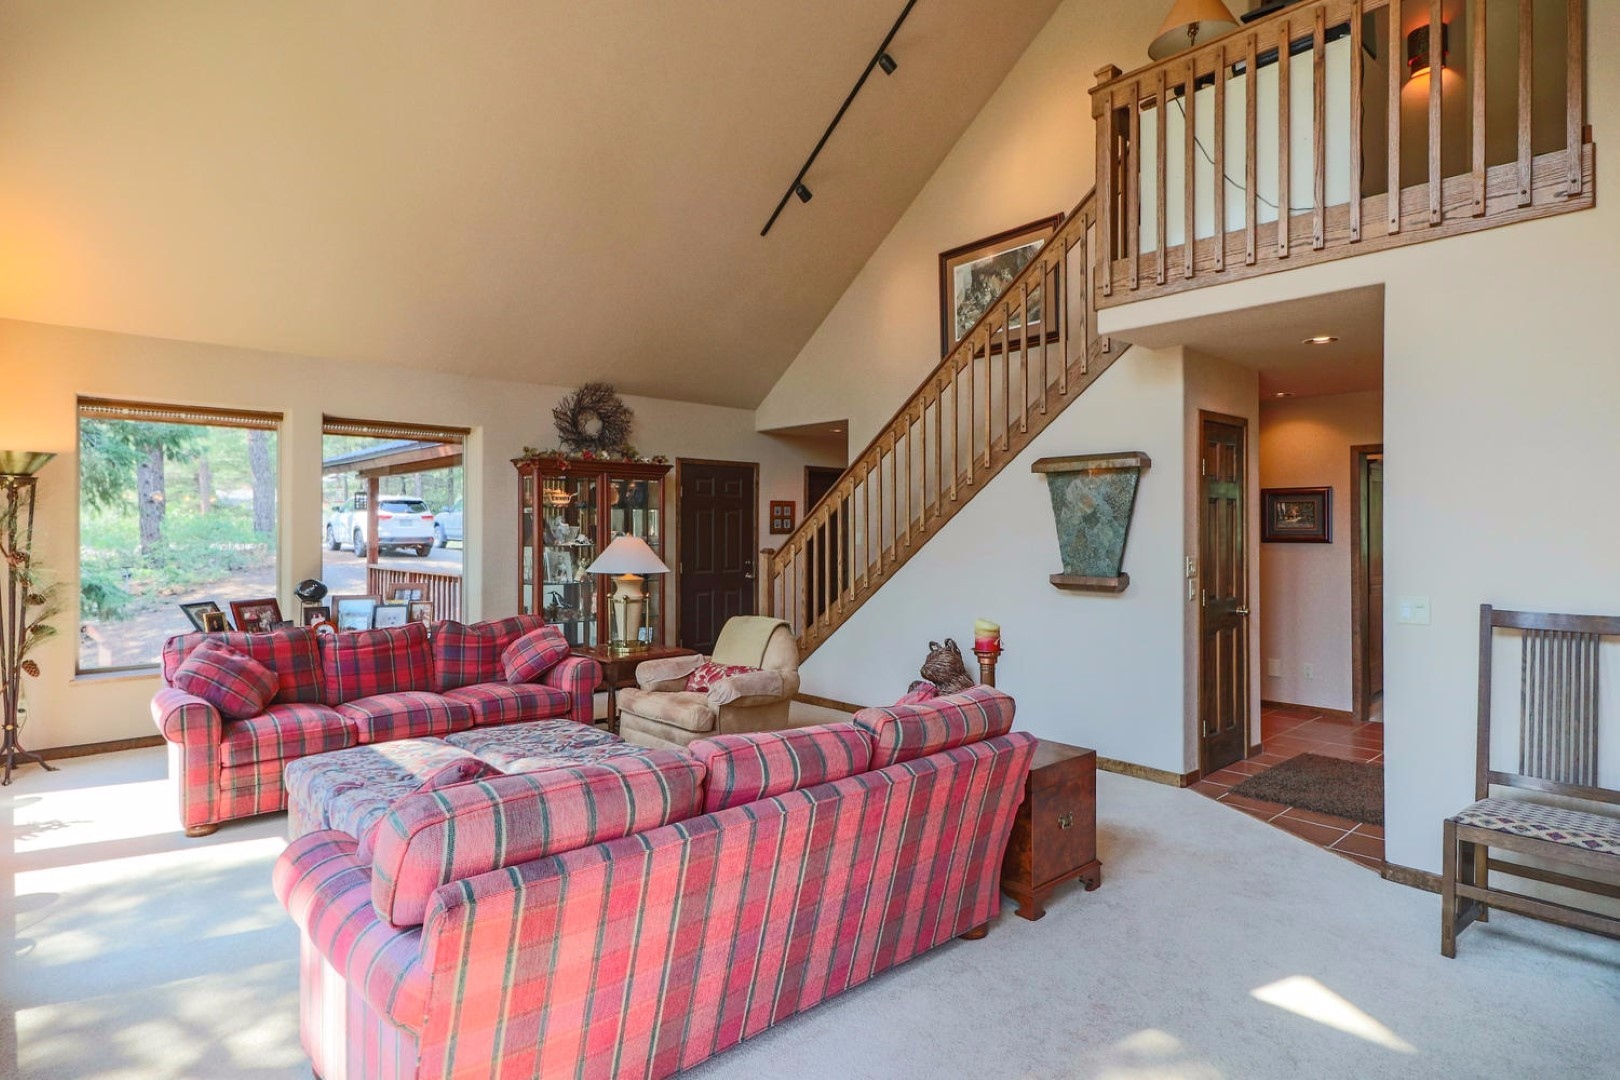 621 Cool Pines Dr Pagosa-large-020-56-621 Cool Pines-1500×1000-72dpi